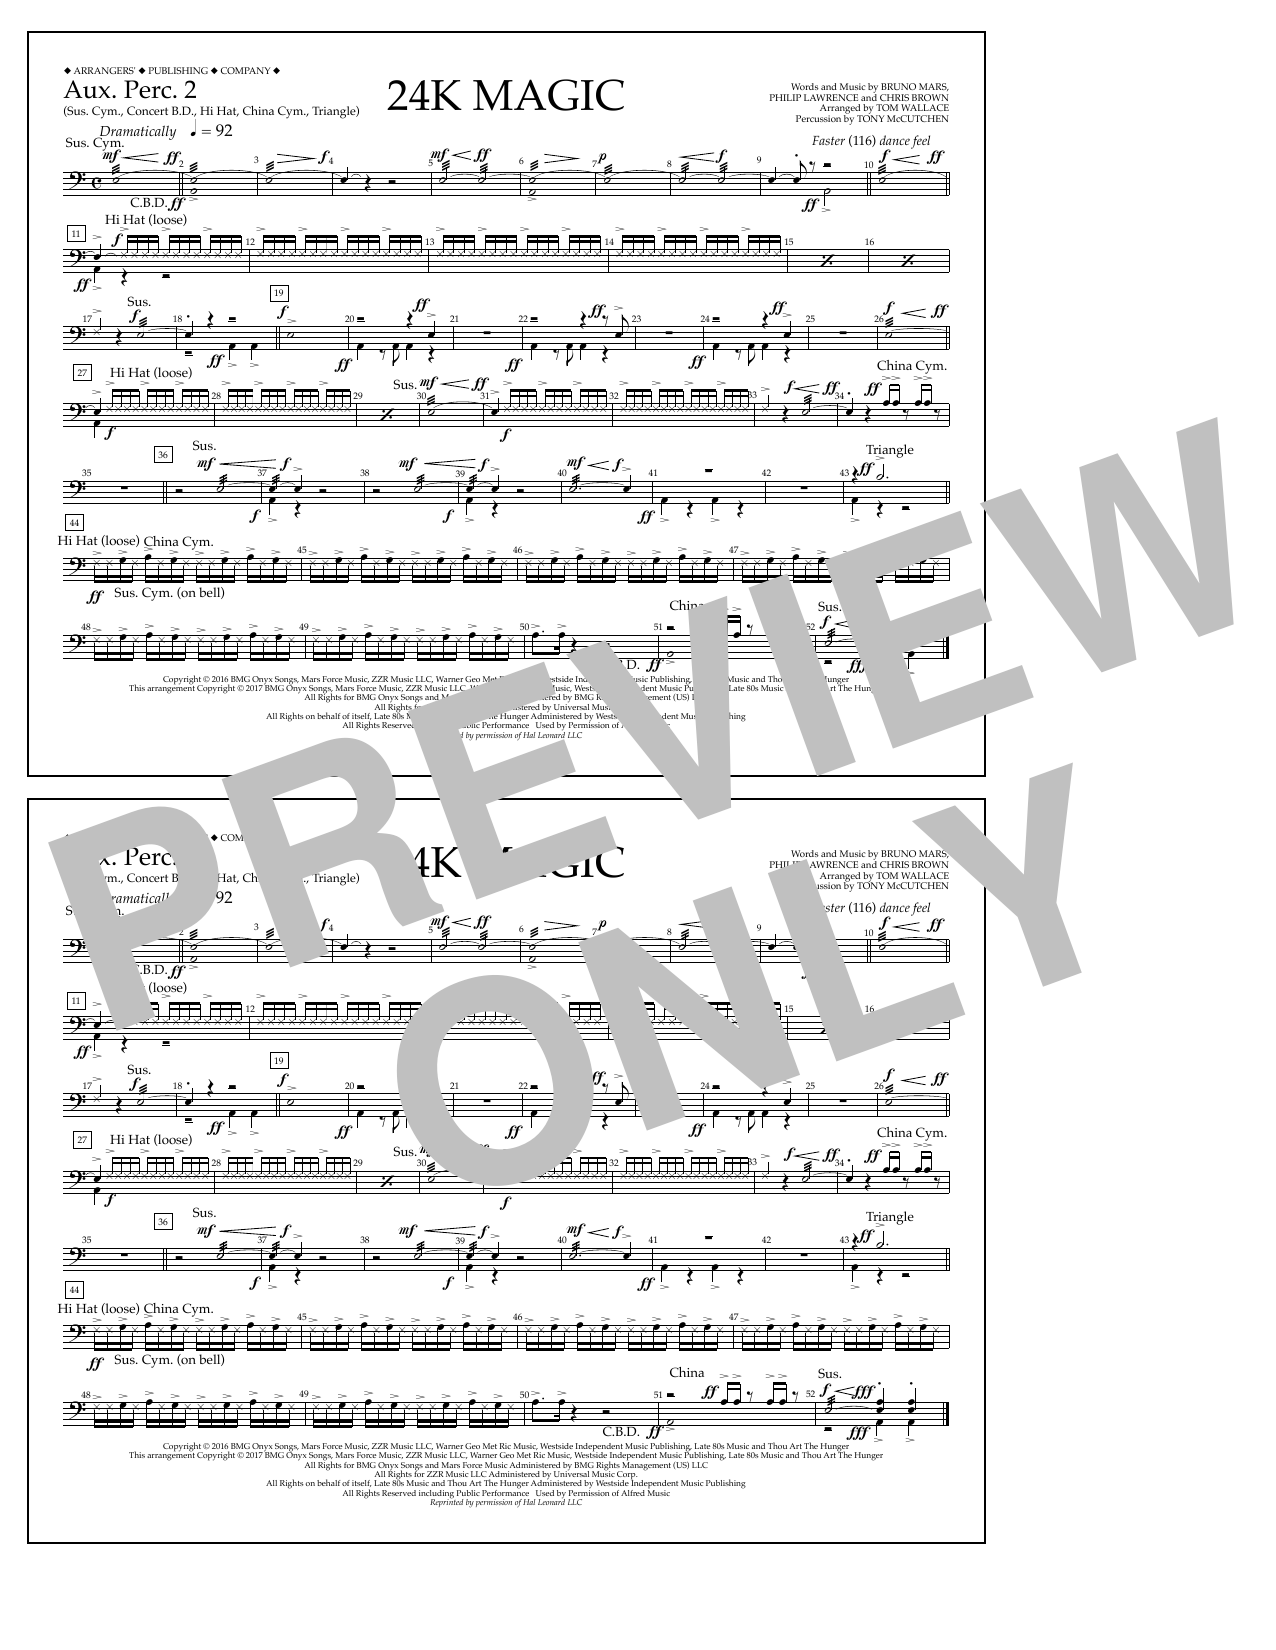 Tom Wallace 24K Magic - Aux. Perc. 2 sheet music preview music notes and score for Marching Band including 1 page(s)